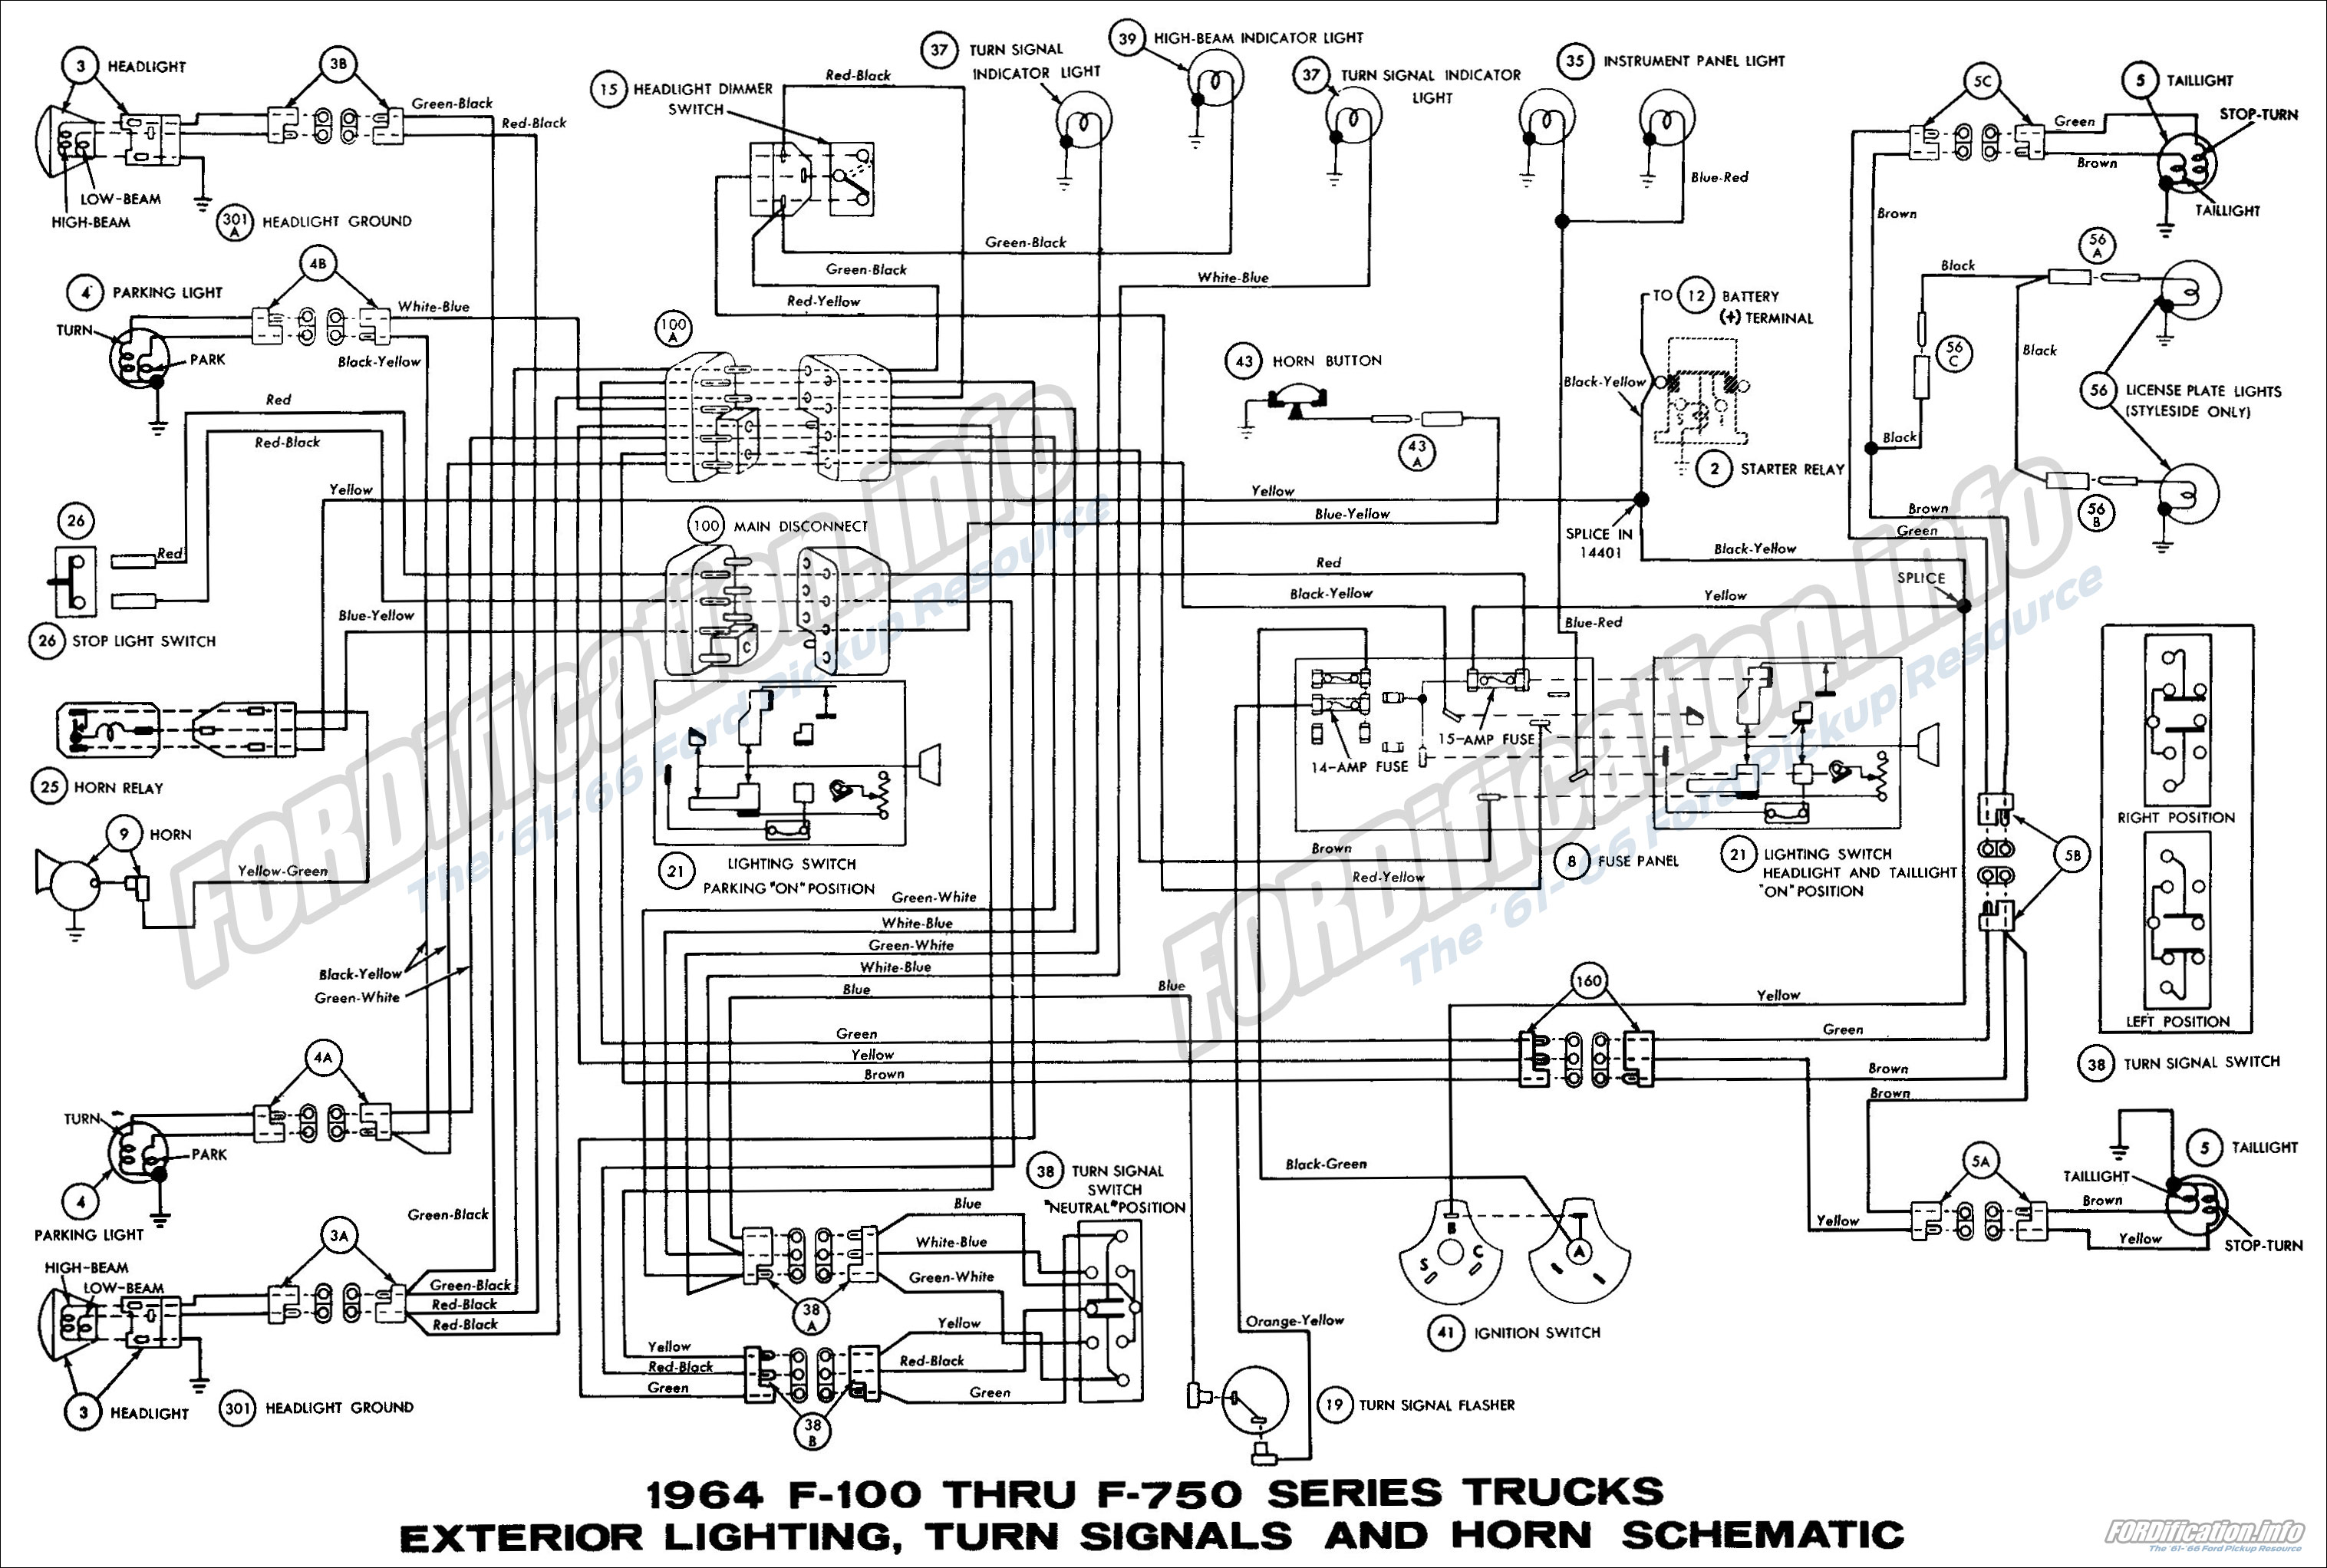 1964 Ford Truck Wiring Diagram | Wiring Diagram F Wiring Schematics on